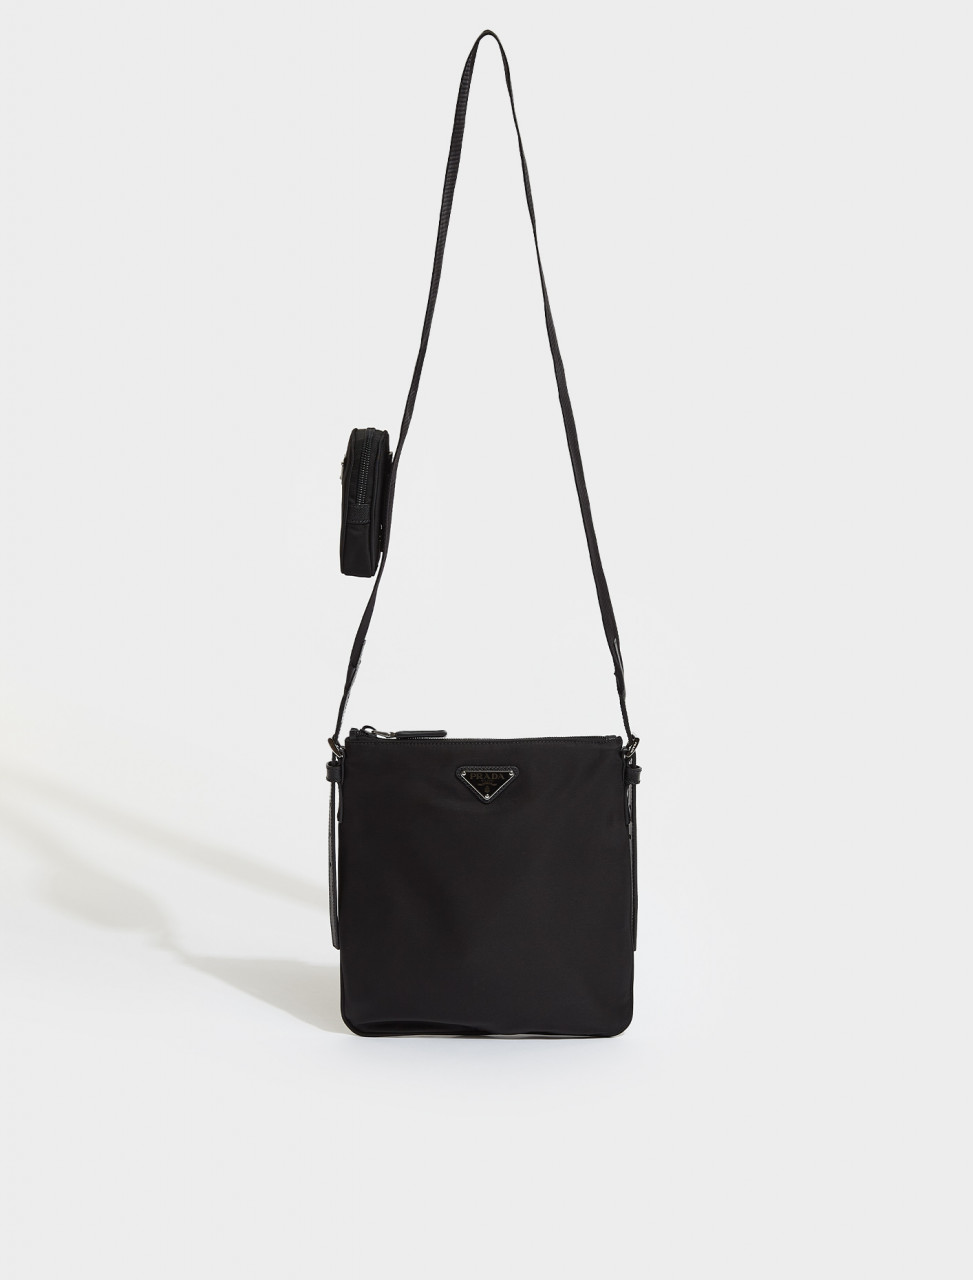 2VH124-F0002 PRADA BANDOLIERA BAG IN BLACK